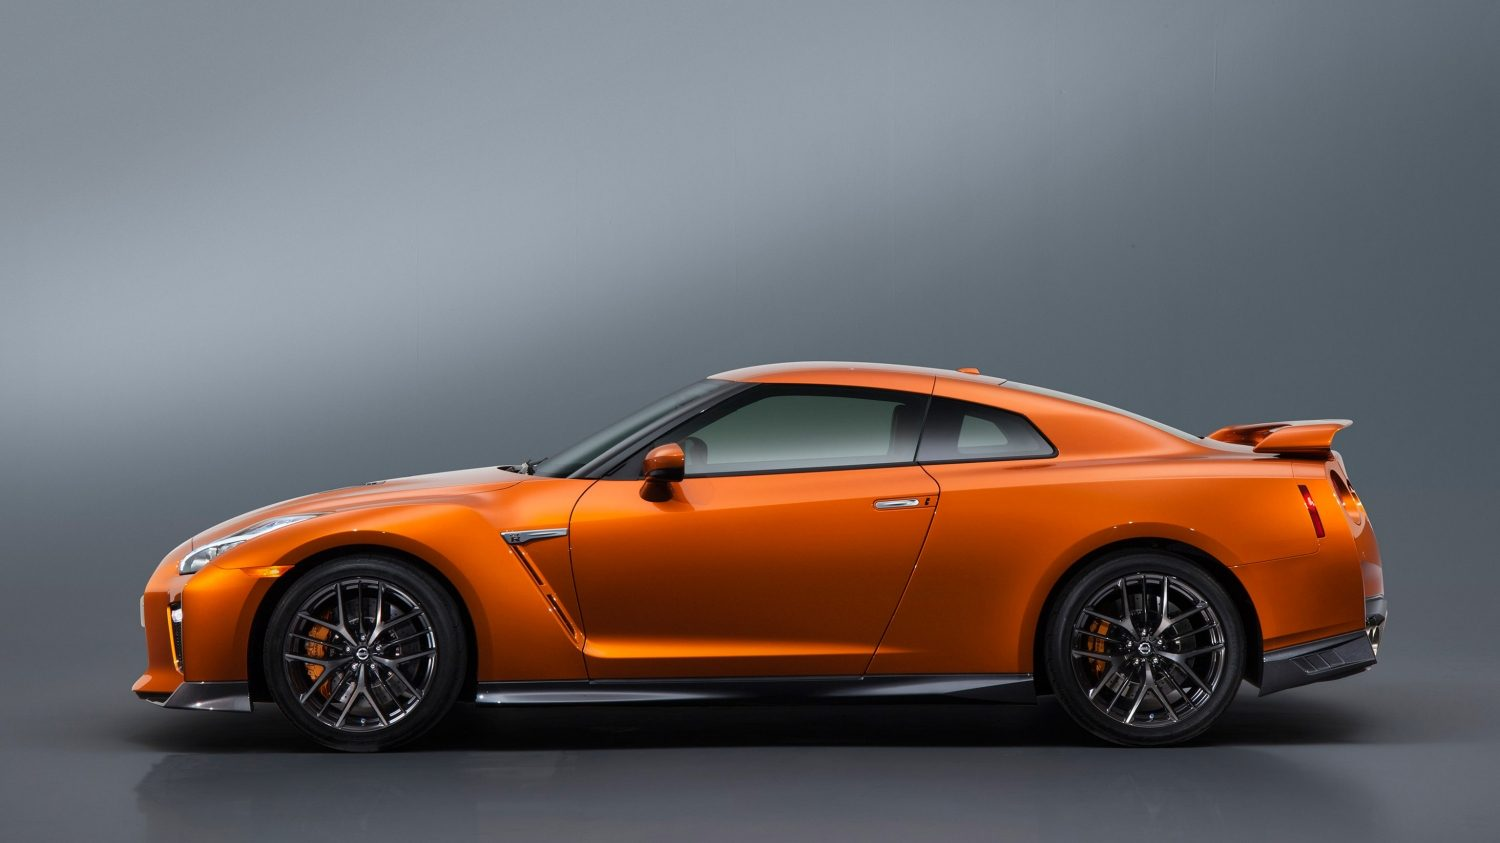 GTR in Orange side view